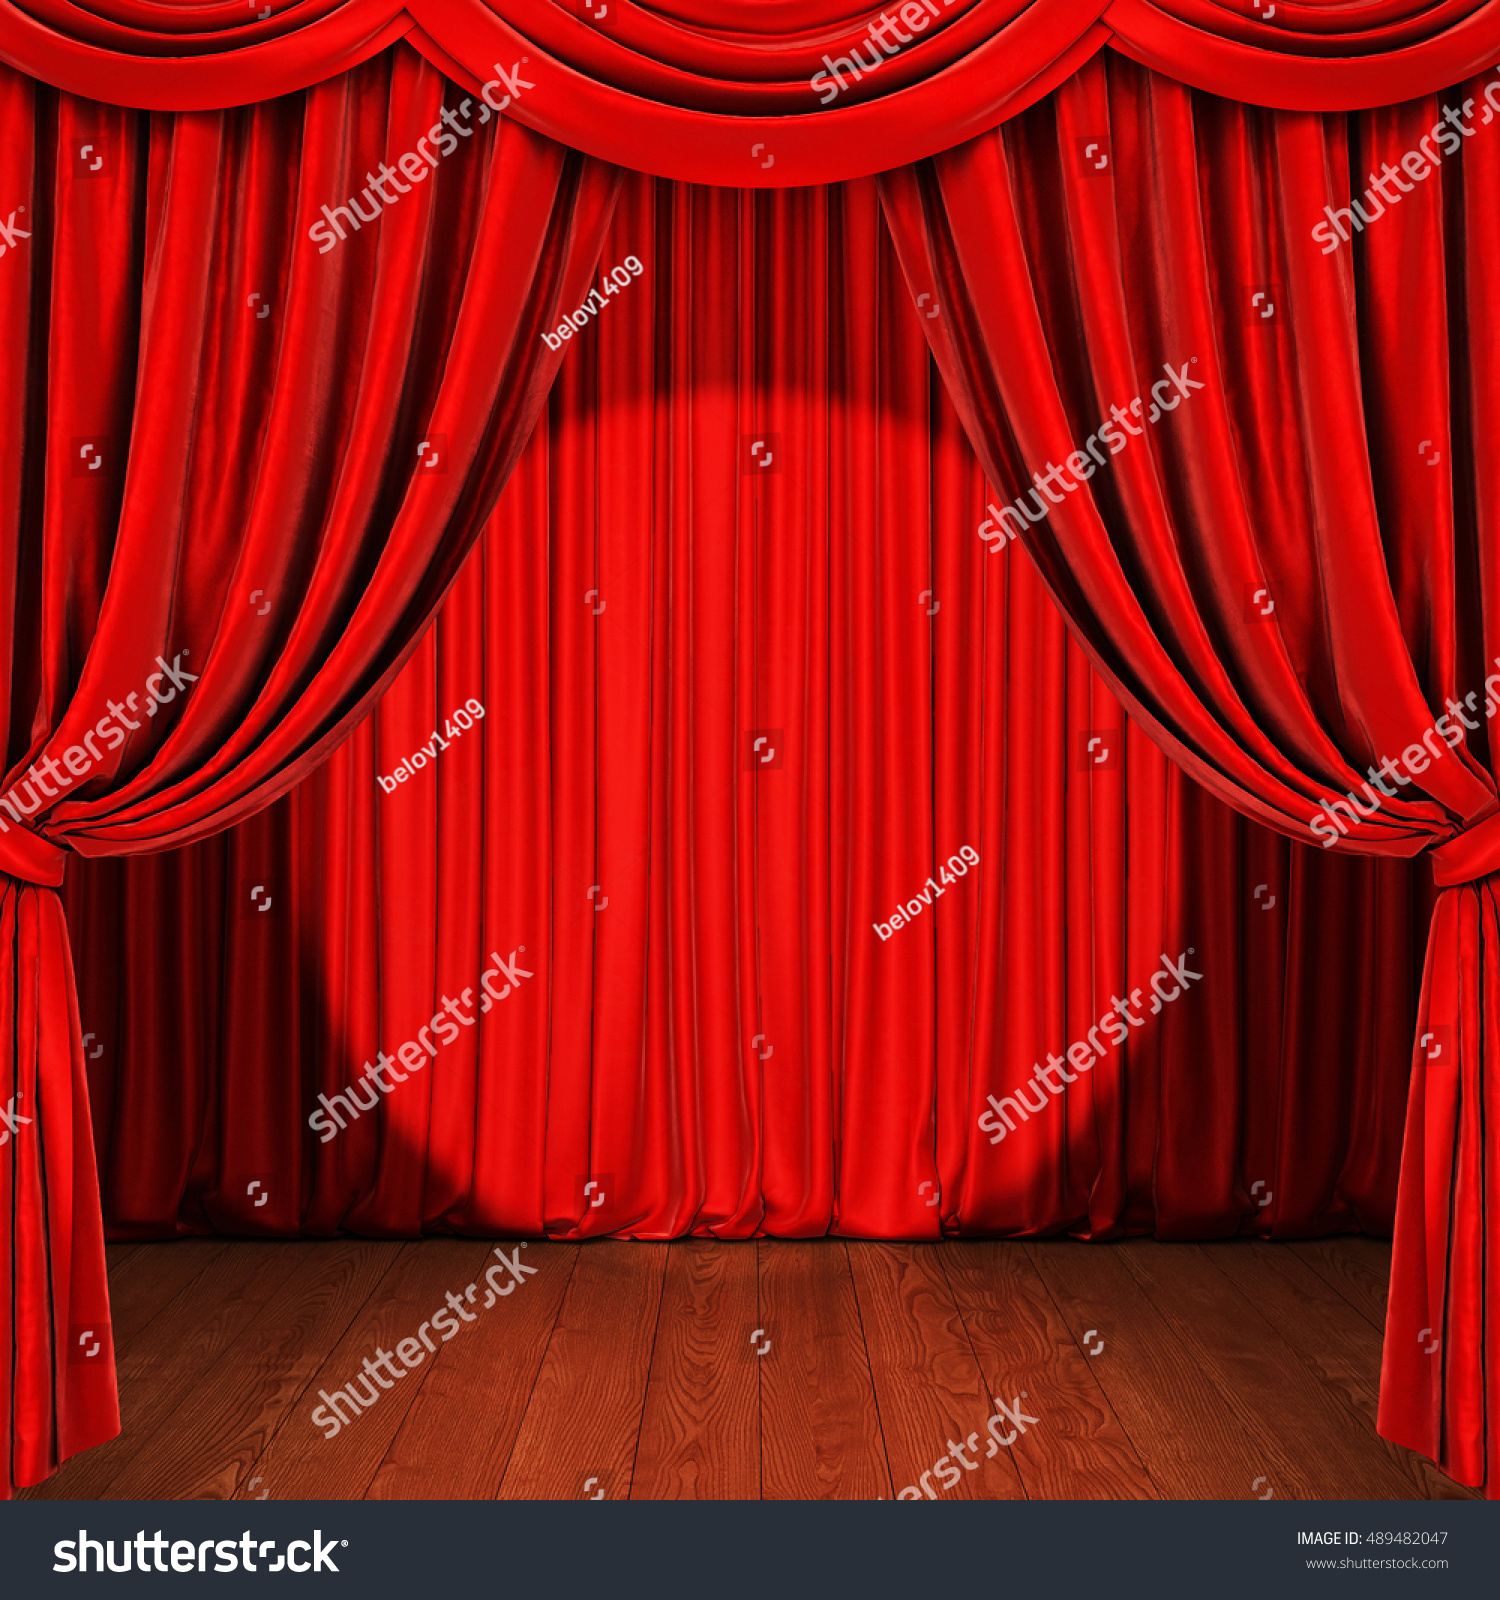 Red curtain spotlight - Stage With Red Curtain Wooden Floor And Spotlight 3d Rendering